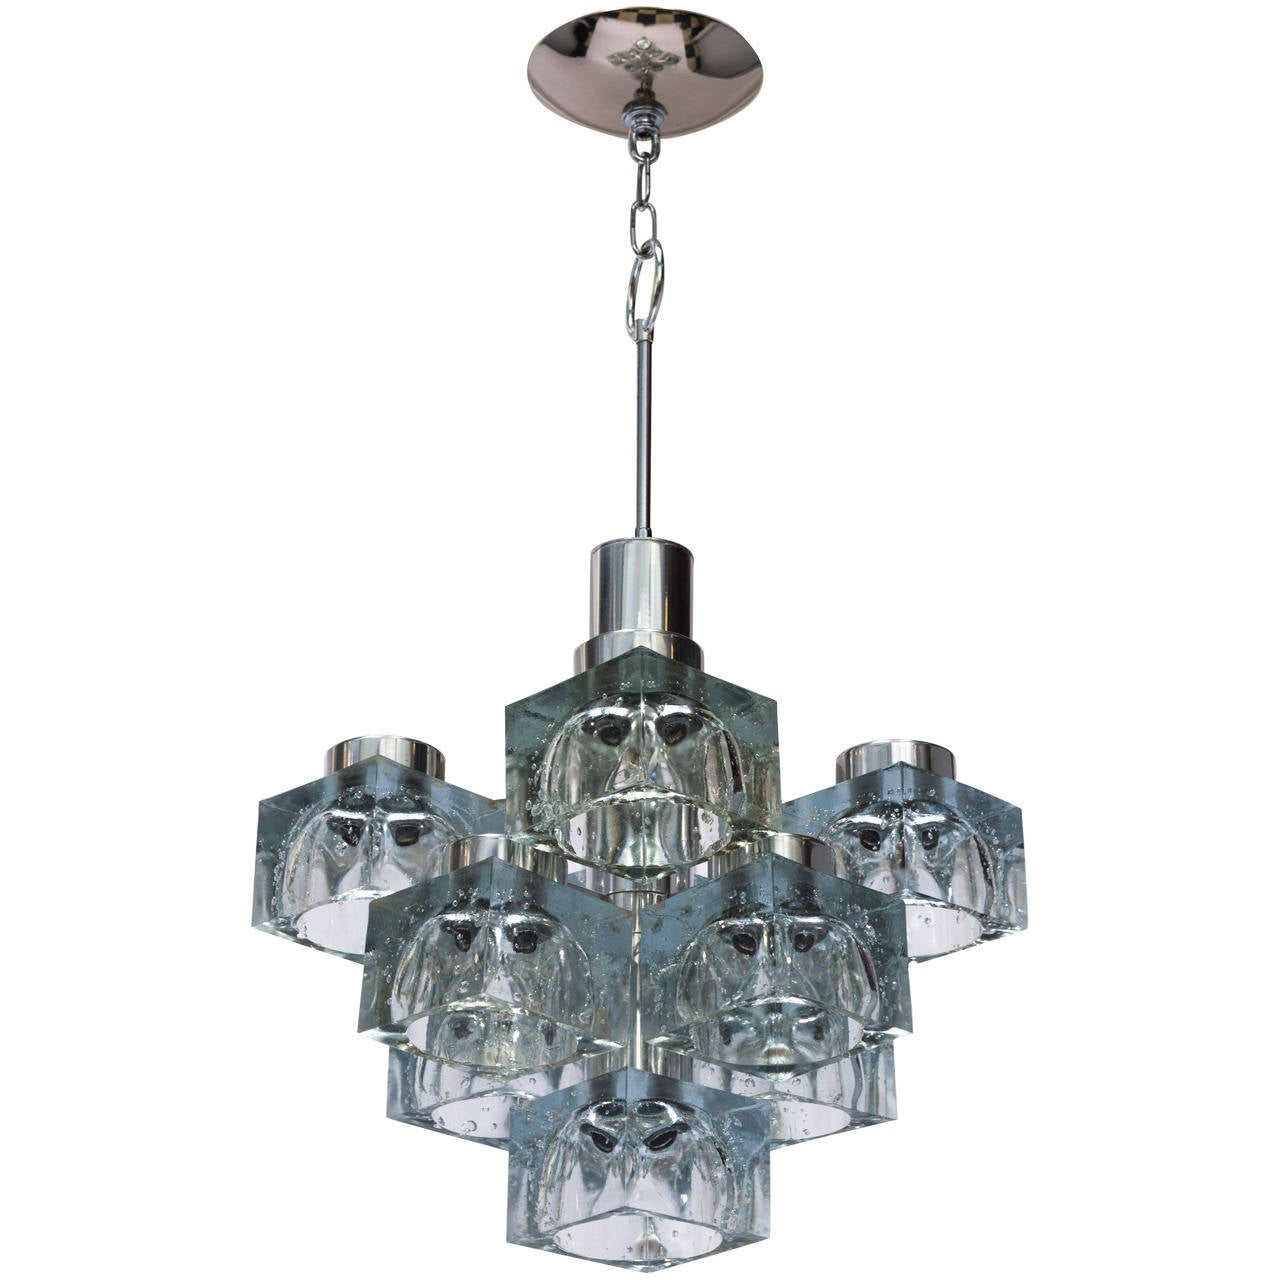 Gaetano Sciolari Ice Cube Chandelier for Lightolier